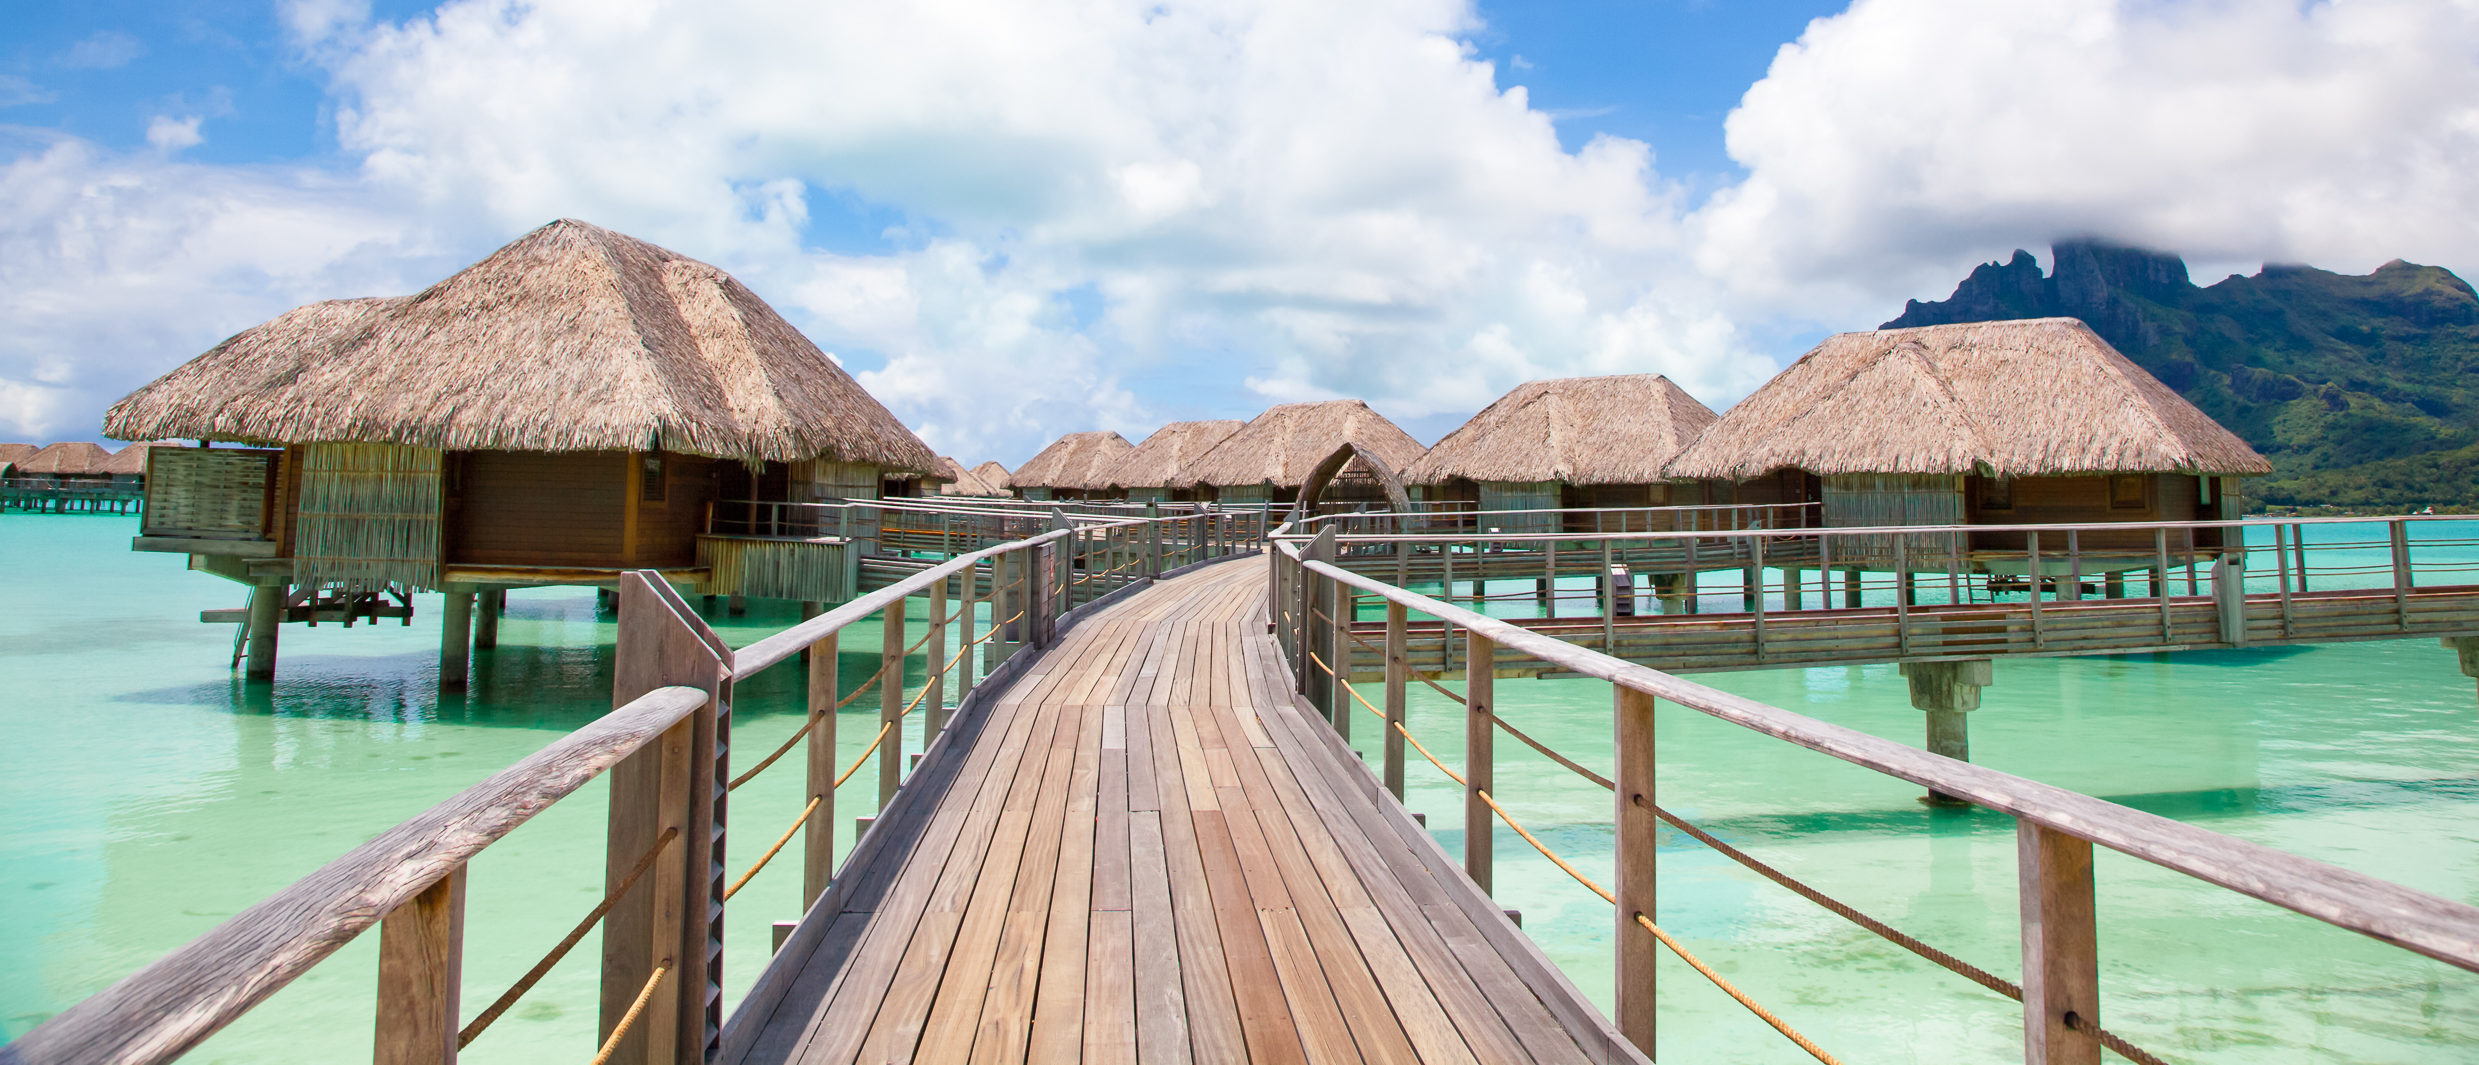 Four Seasons Resort Bora Bora is a unique experience you dont want to miss. (Photo: Shutterstock)